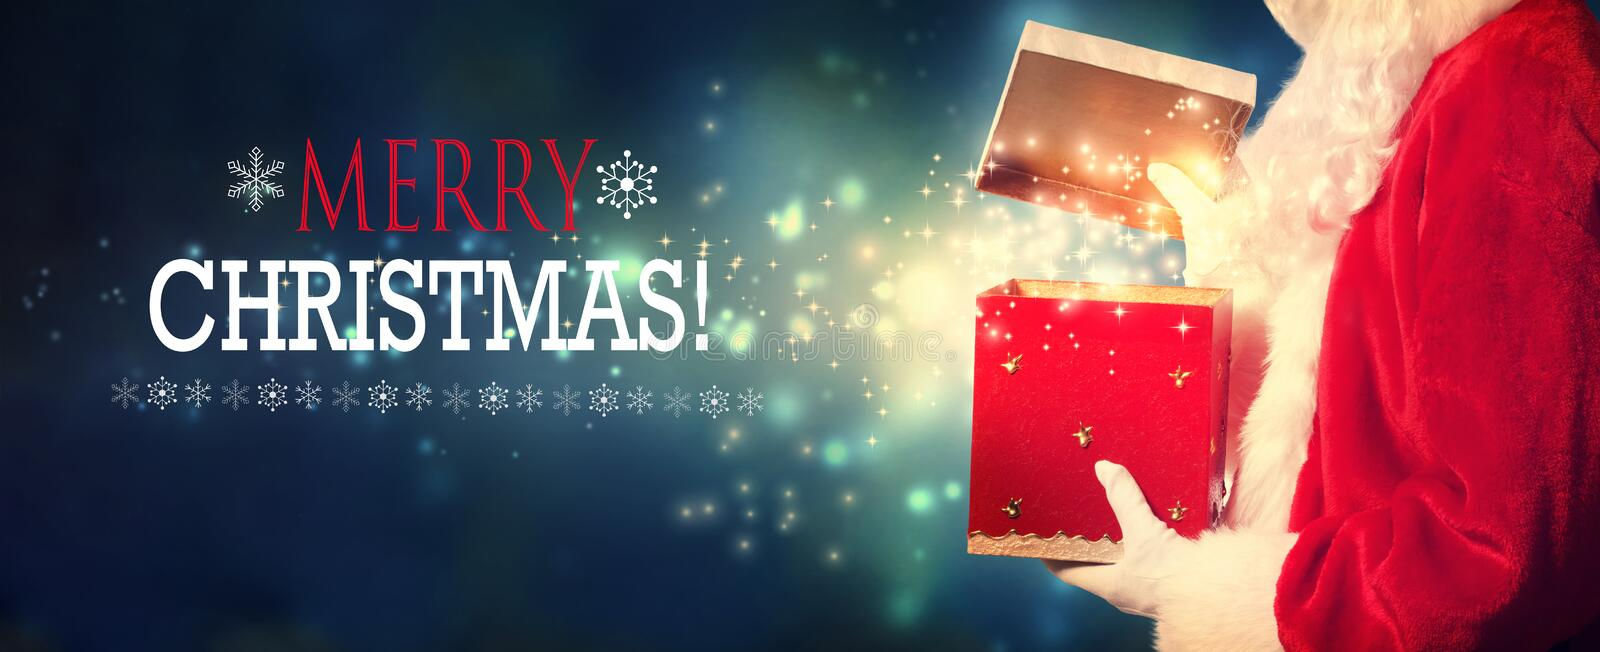 Merry Christmas message with Santa opening a gift box. On a shiny light background royalty free stock photography